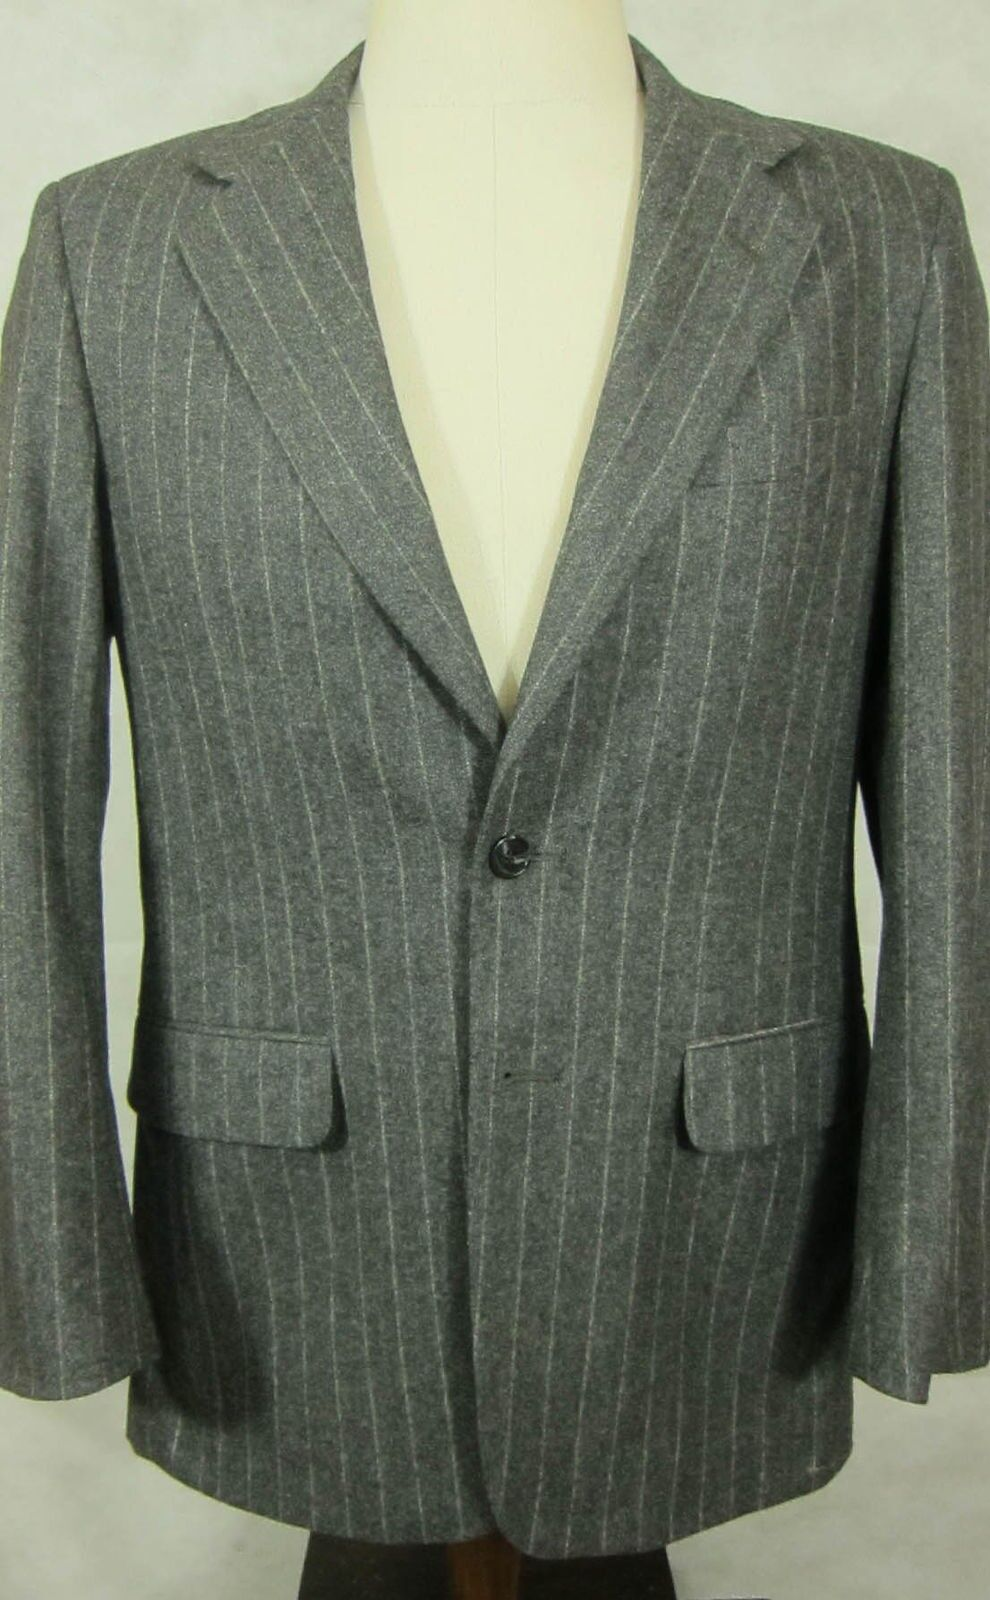 VINTAGE Corbin Light grau With Weiß Chalk Stripe Soft Flannel Wool Suit 40R 32W